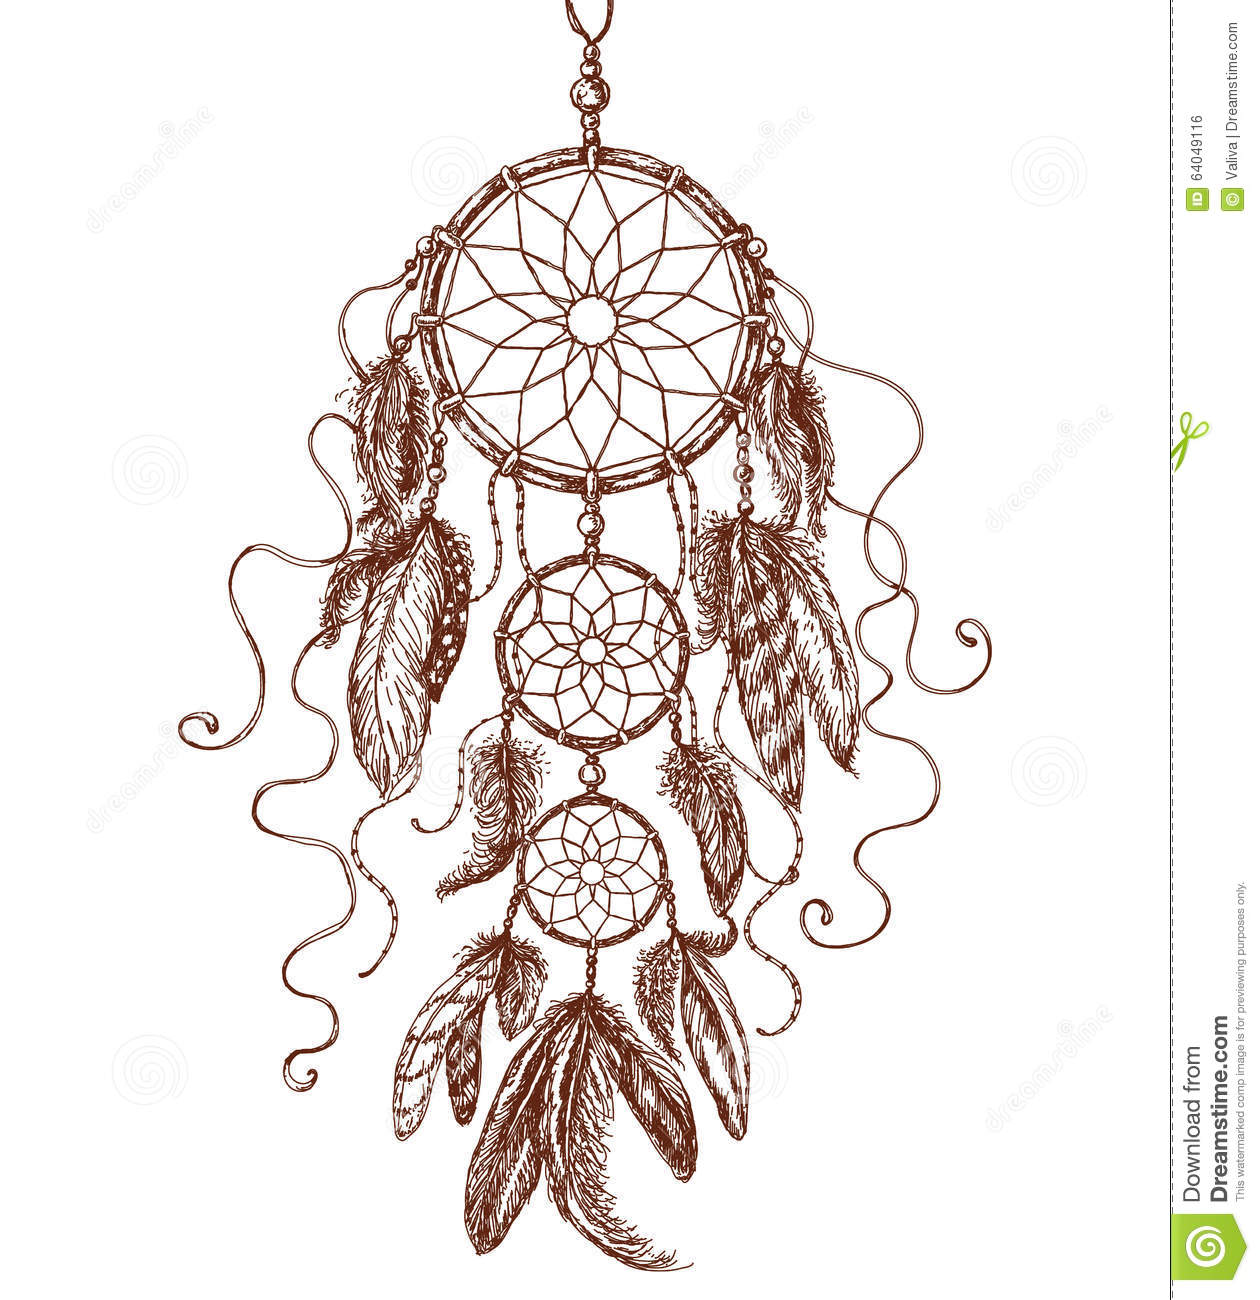 Stock Illustration Hand Drawn Dream Catcher Indian Amulet Vector Sketch Image64049116 together with Dreamcatcher Sketch 473851395 furthermore Wt 2027 in addition 30 Significant Armband Tattoo Meaning And Designs as well Creative Best Friend Tattoos. on dream catcher drawings